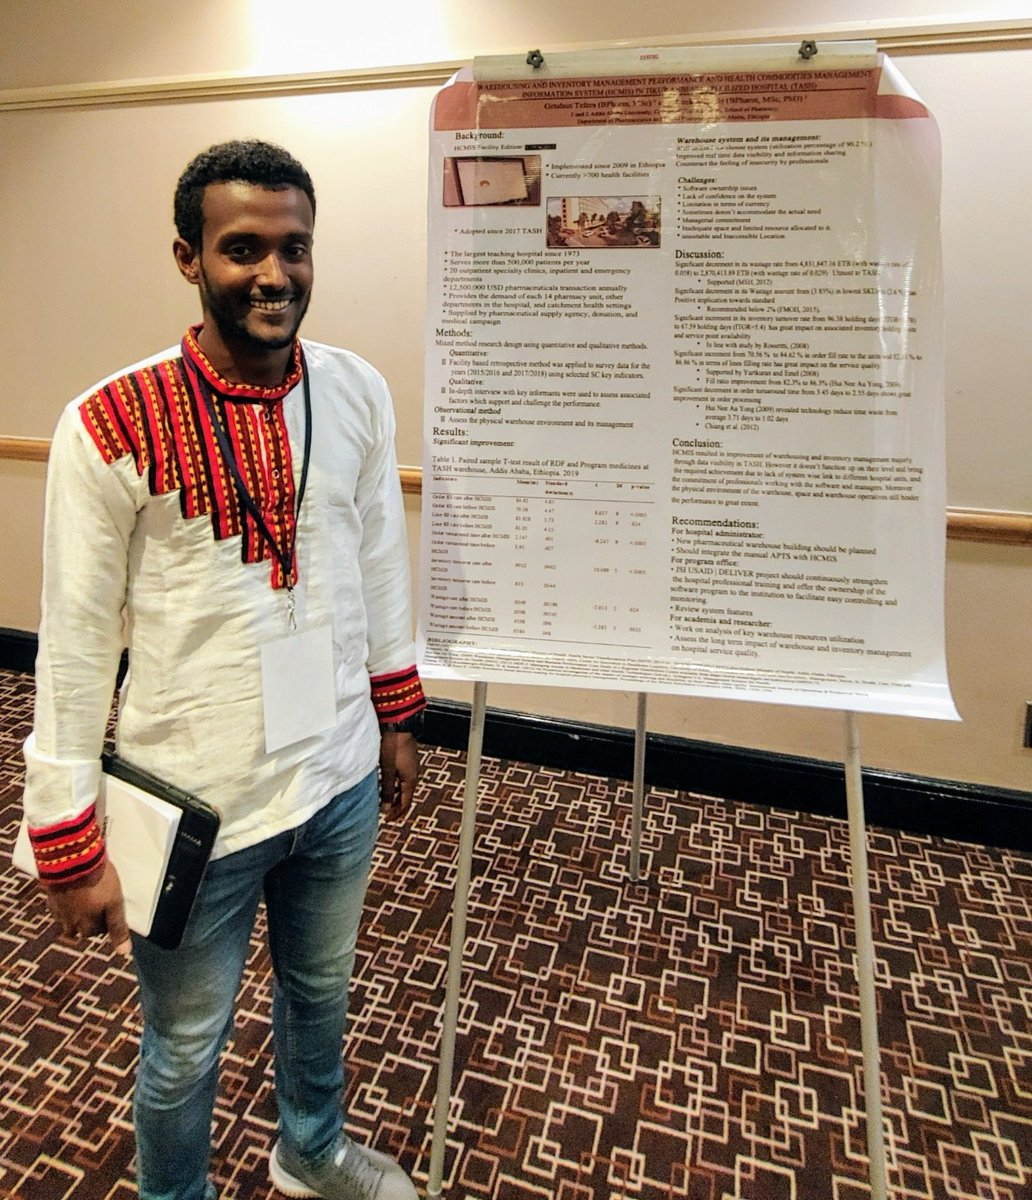 Getahun Tefera, Tikur Anbessa Hospital  #Addisababa poster at  @ghsc_summit on impact of Dagu LMIS at pharmacy. Order fill rate: 71% to 85%, order turnaround time improved by c. 30%, inventory turnover: 0.6 to 0.9, waste declined.  #technology works  @JSIhealth  @EPSA_Ethiopia